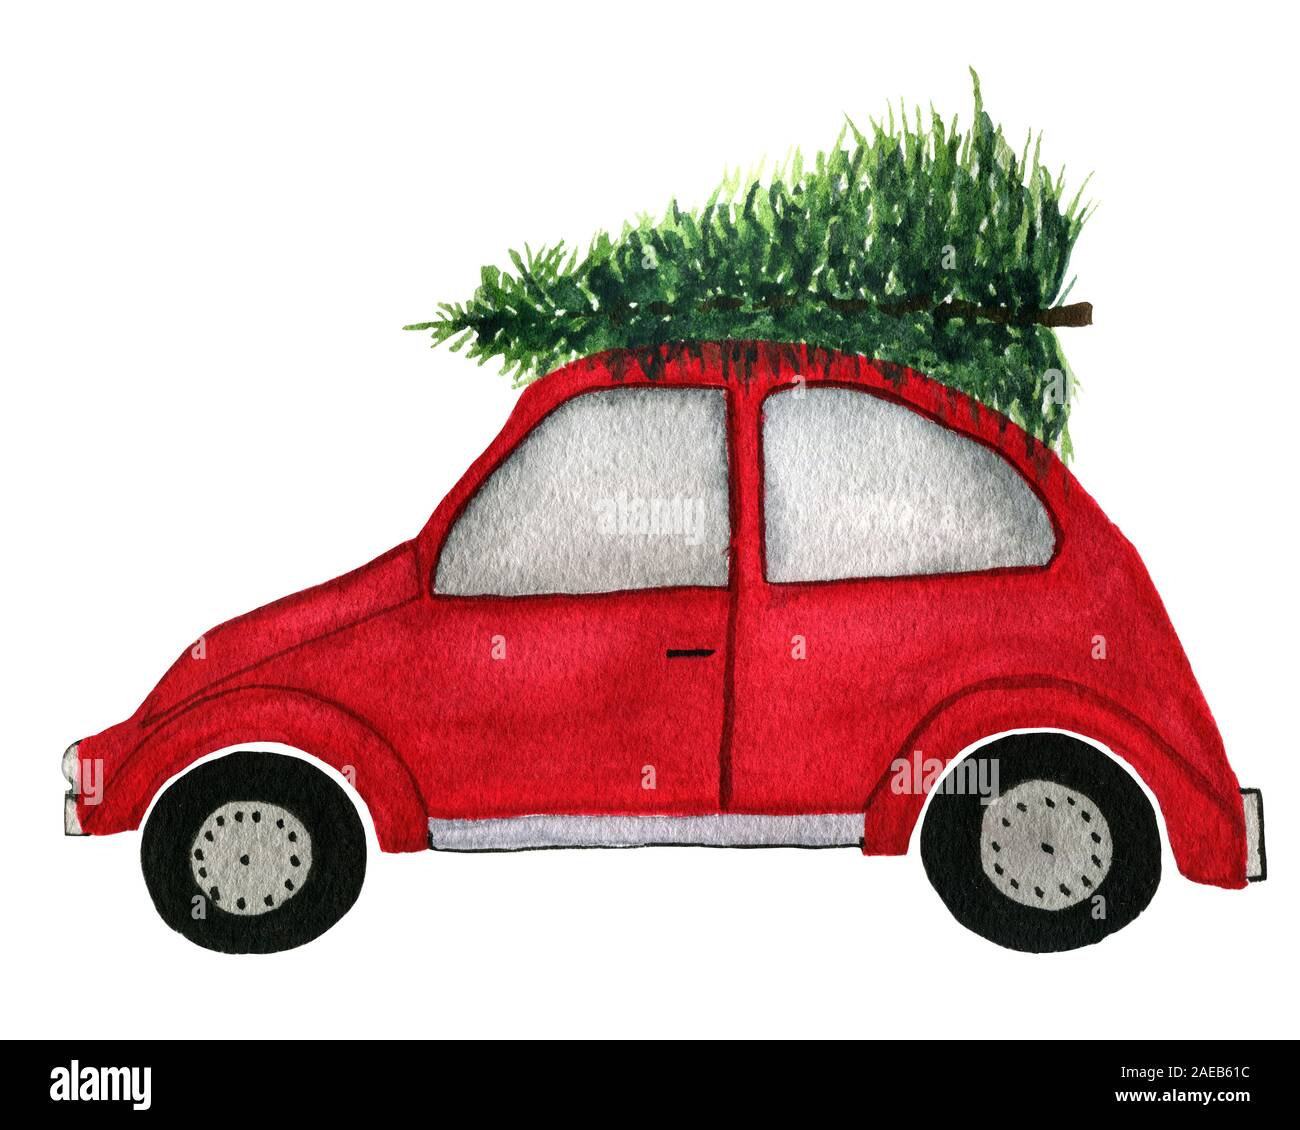 Car With Christmas Tree On Top Decoration  from c8.alamy.com